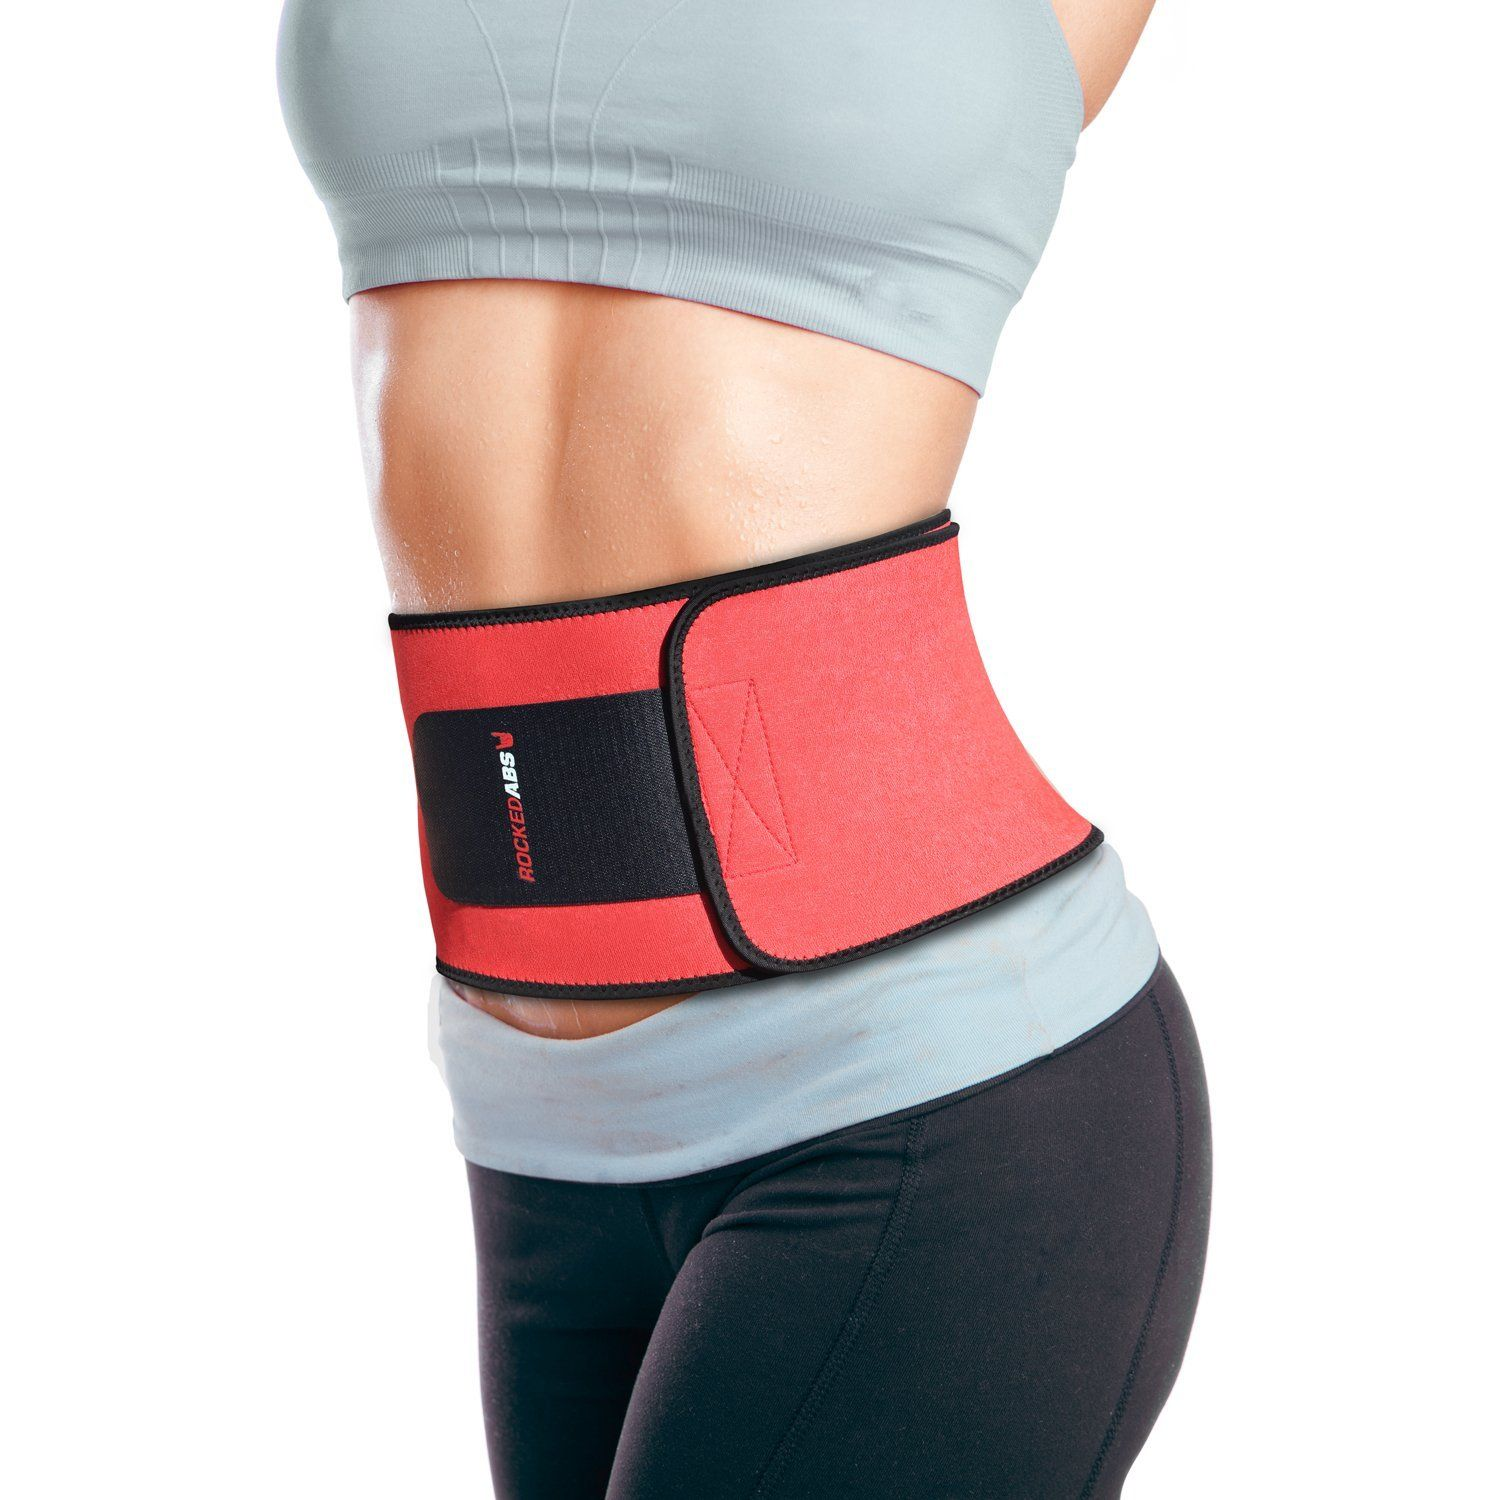 bad4a08b31 Rocked Abs waist trimmer belt for men and women  rockedabs http   www